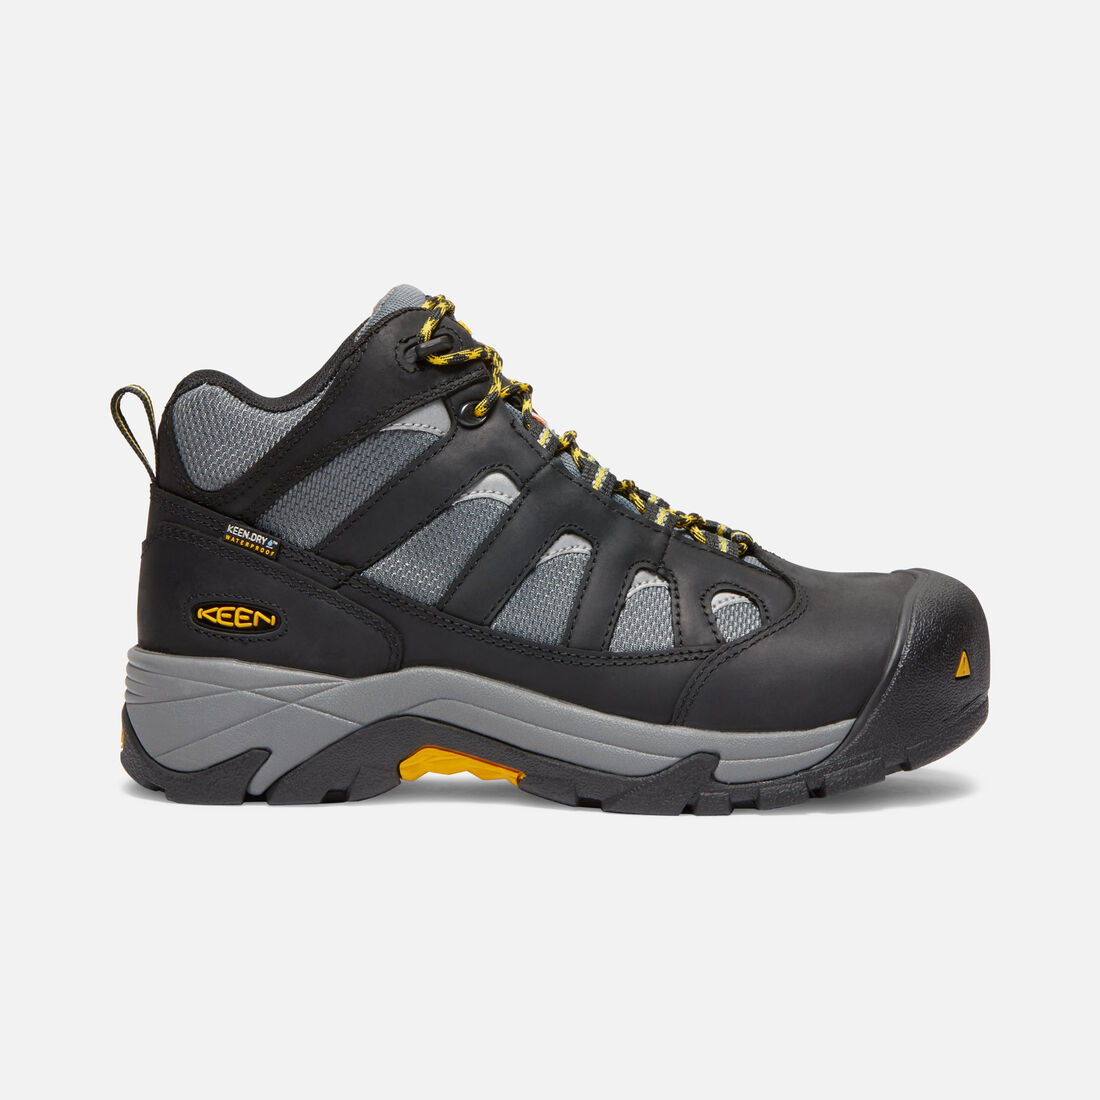 ebdb125710c9 Men s CSA Leduc Mid (Composite Toe) - Defined by stability and slip ...